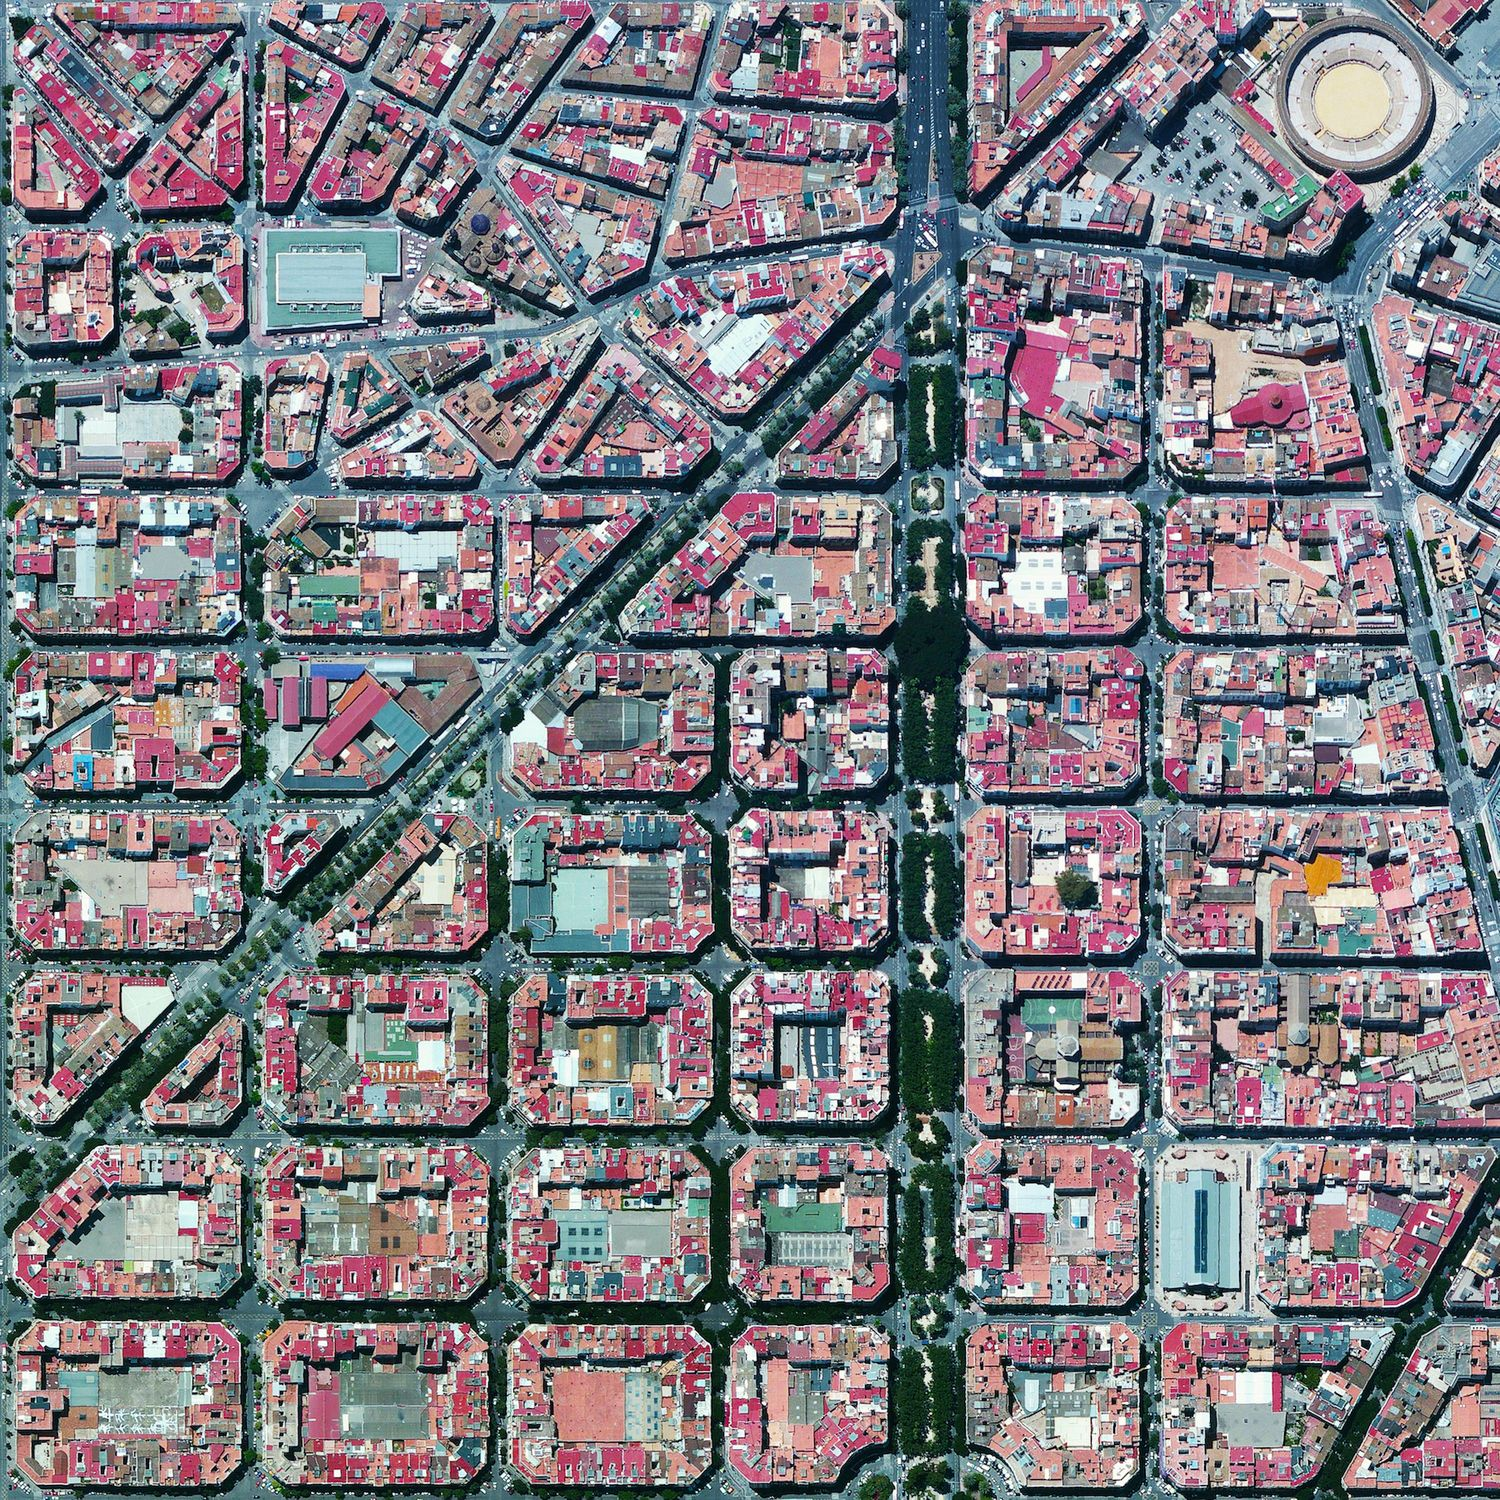 Birds Eye View Barcelona: 1/6/2015 L'Eixample Valencia, Spain The Urban Plan Of The